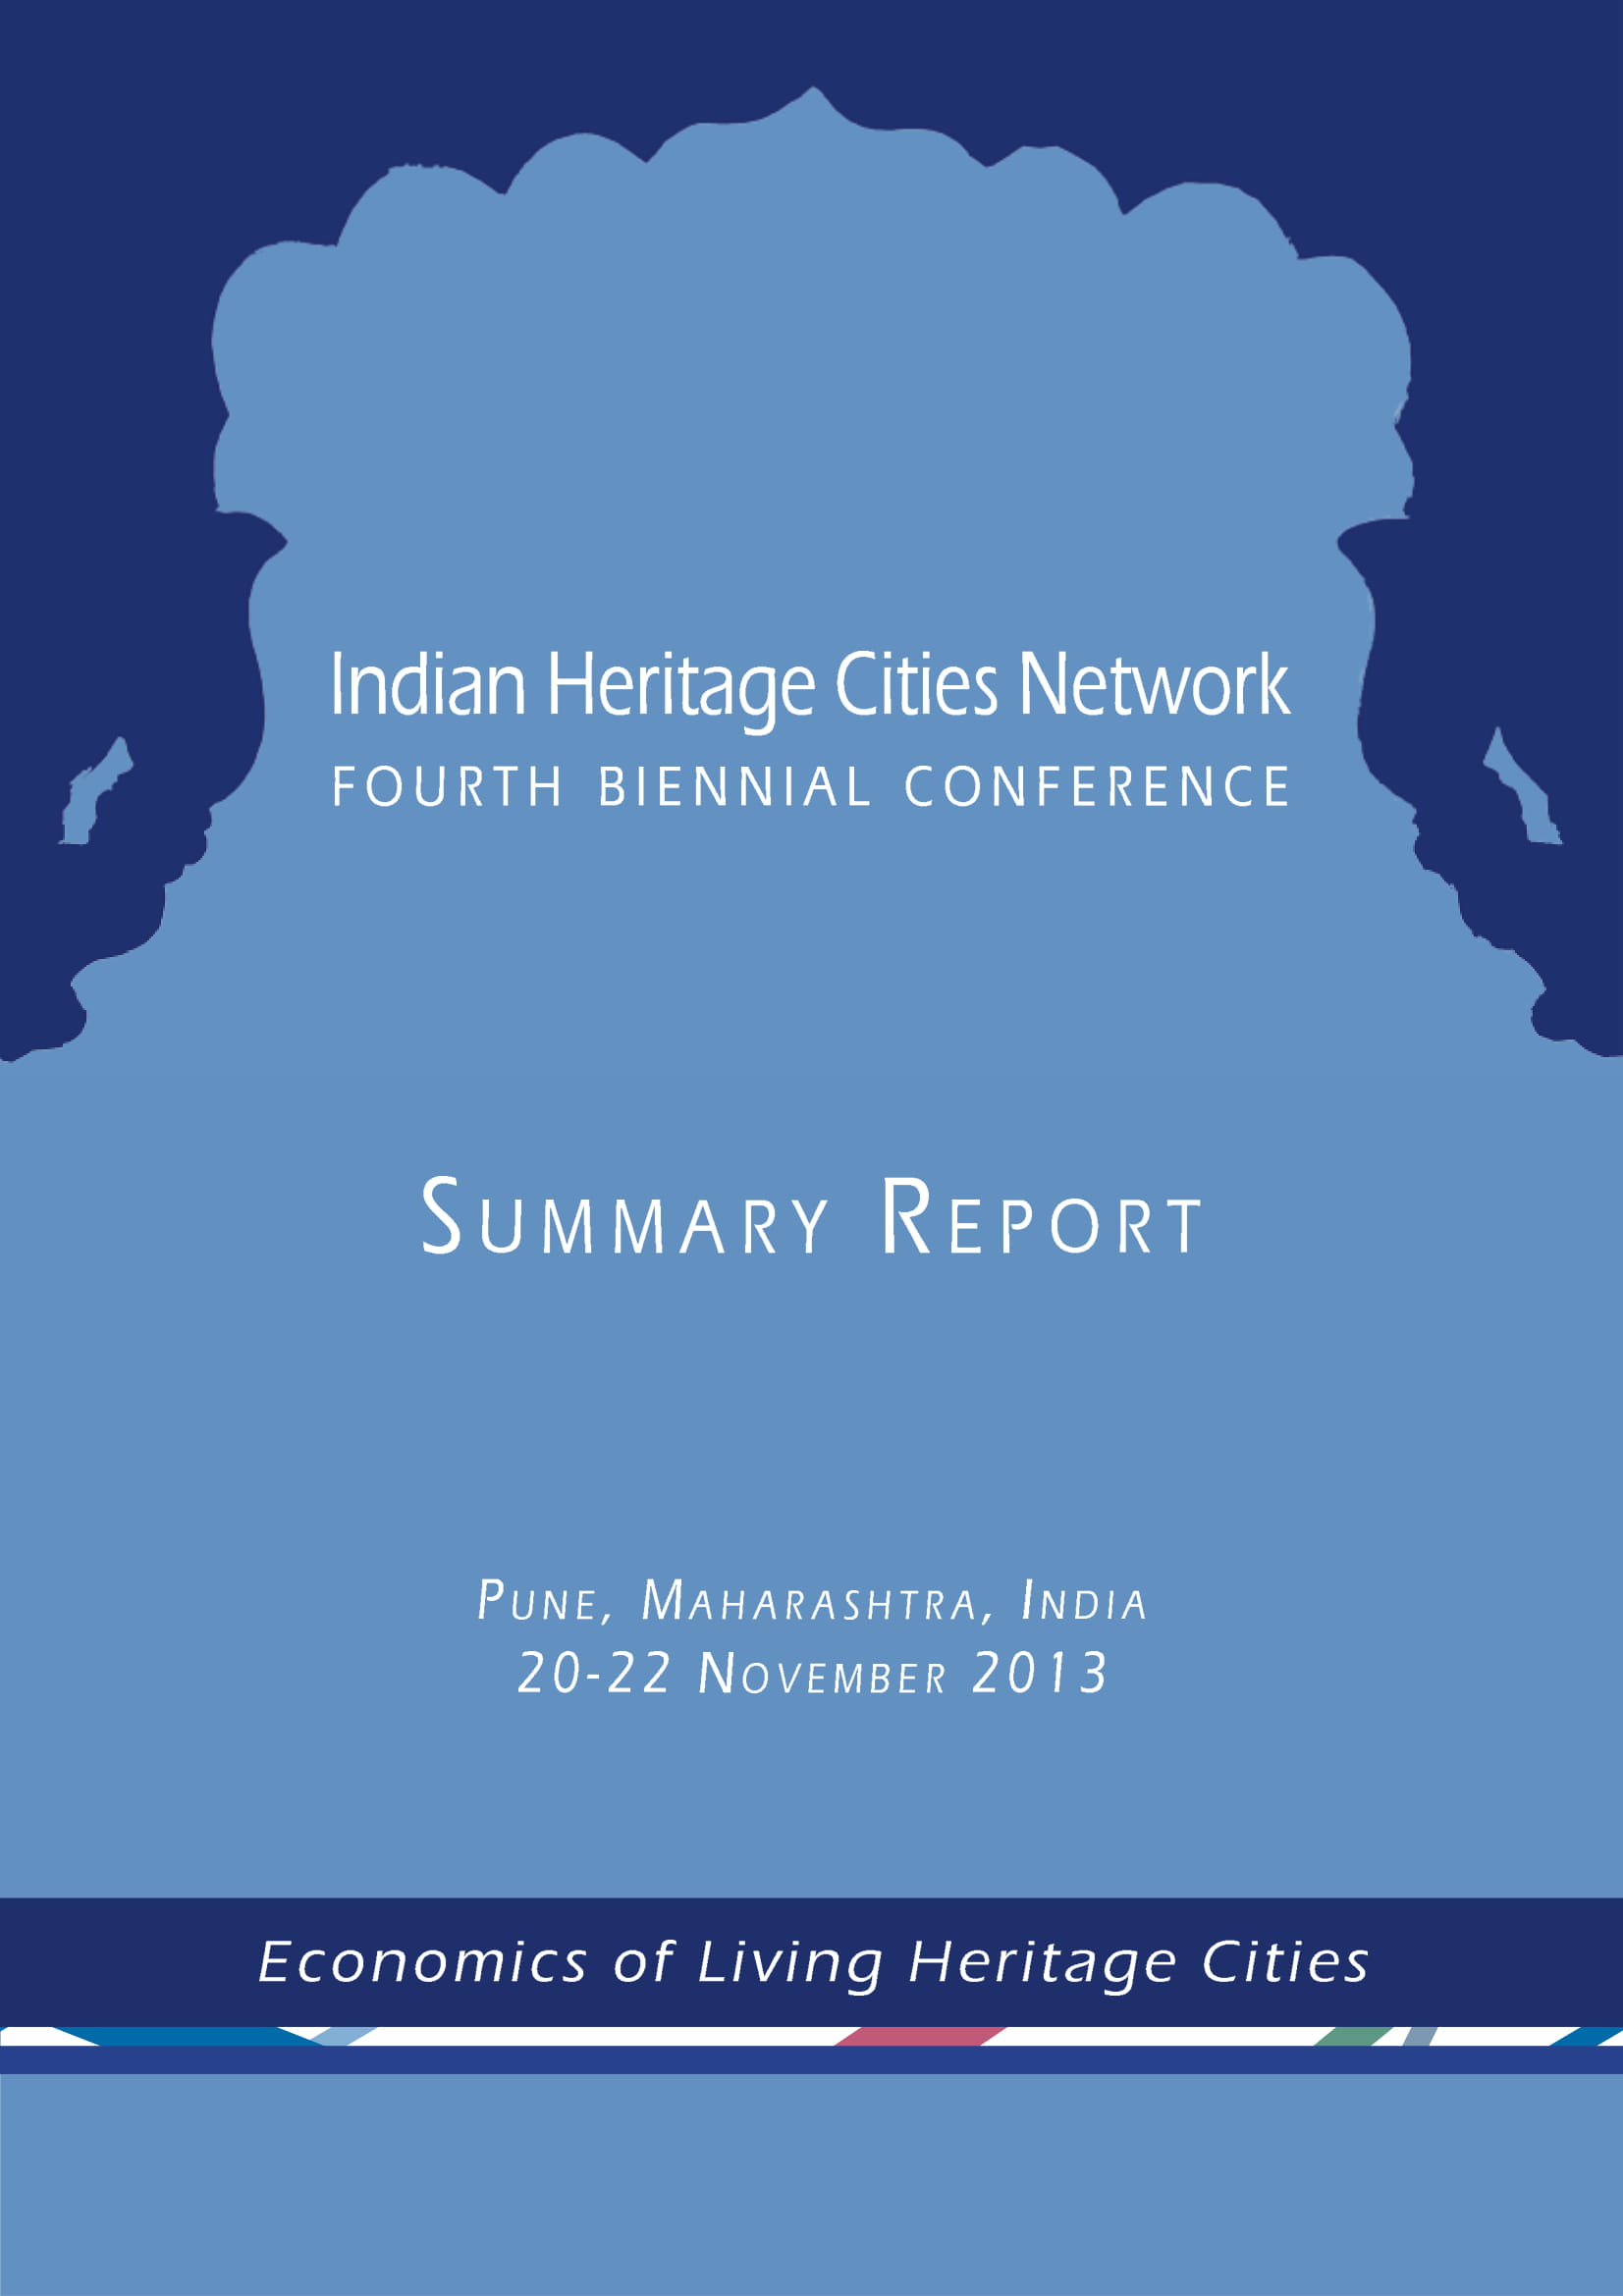 Fourth Biennial Conference Summary Report Publication (1)-1